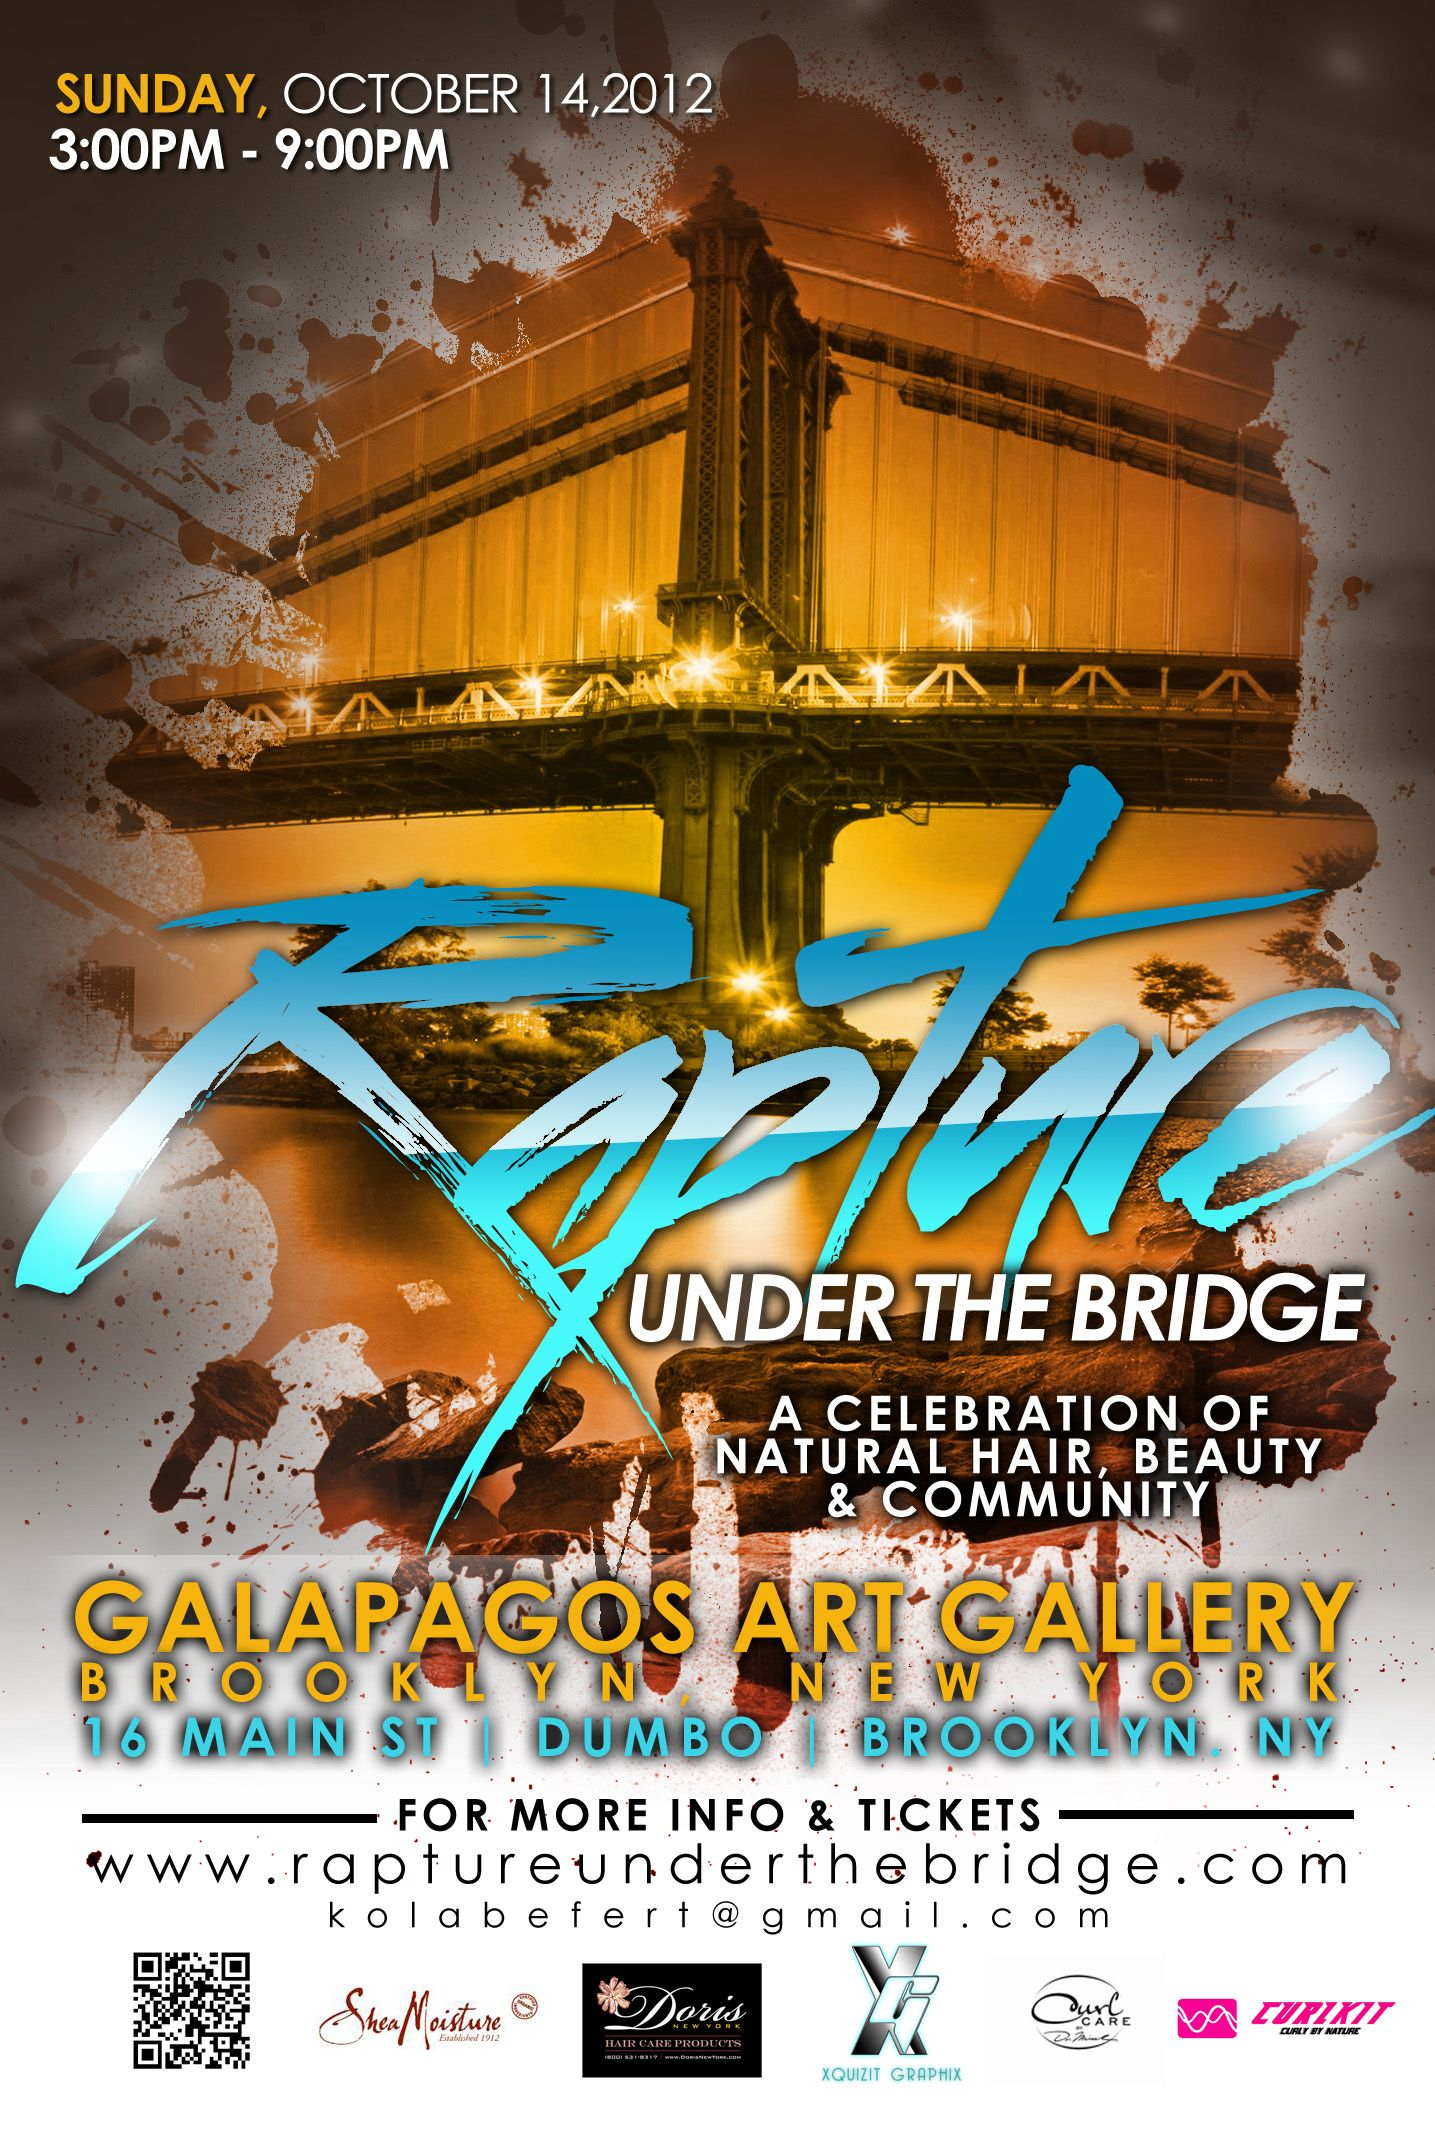 Featured Celebrity Panelists and Performance by Kindred the Family Soul! $20 - Brooklyn, NY October 14, 2012 3-9PM http://raptureunderthebridge.com